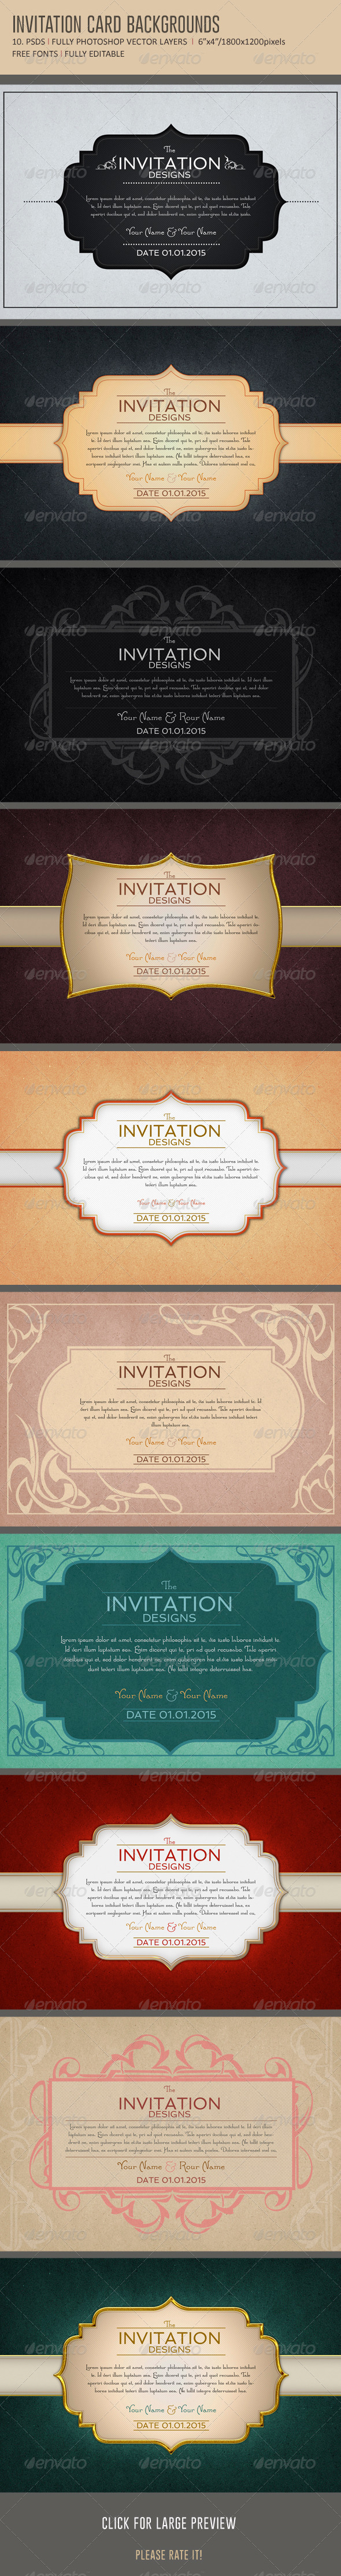 GraphicRiver Invitation Card Backgrounds 6263455